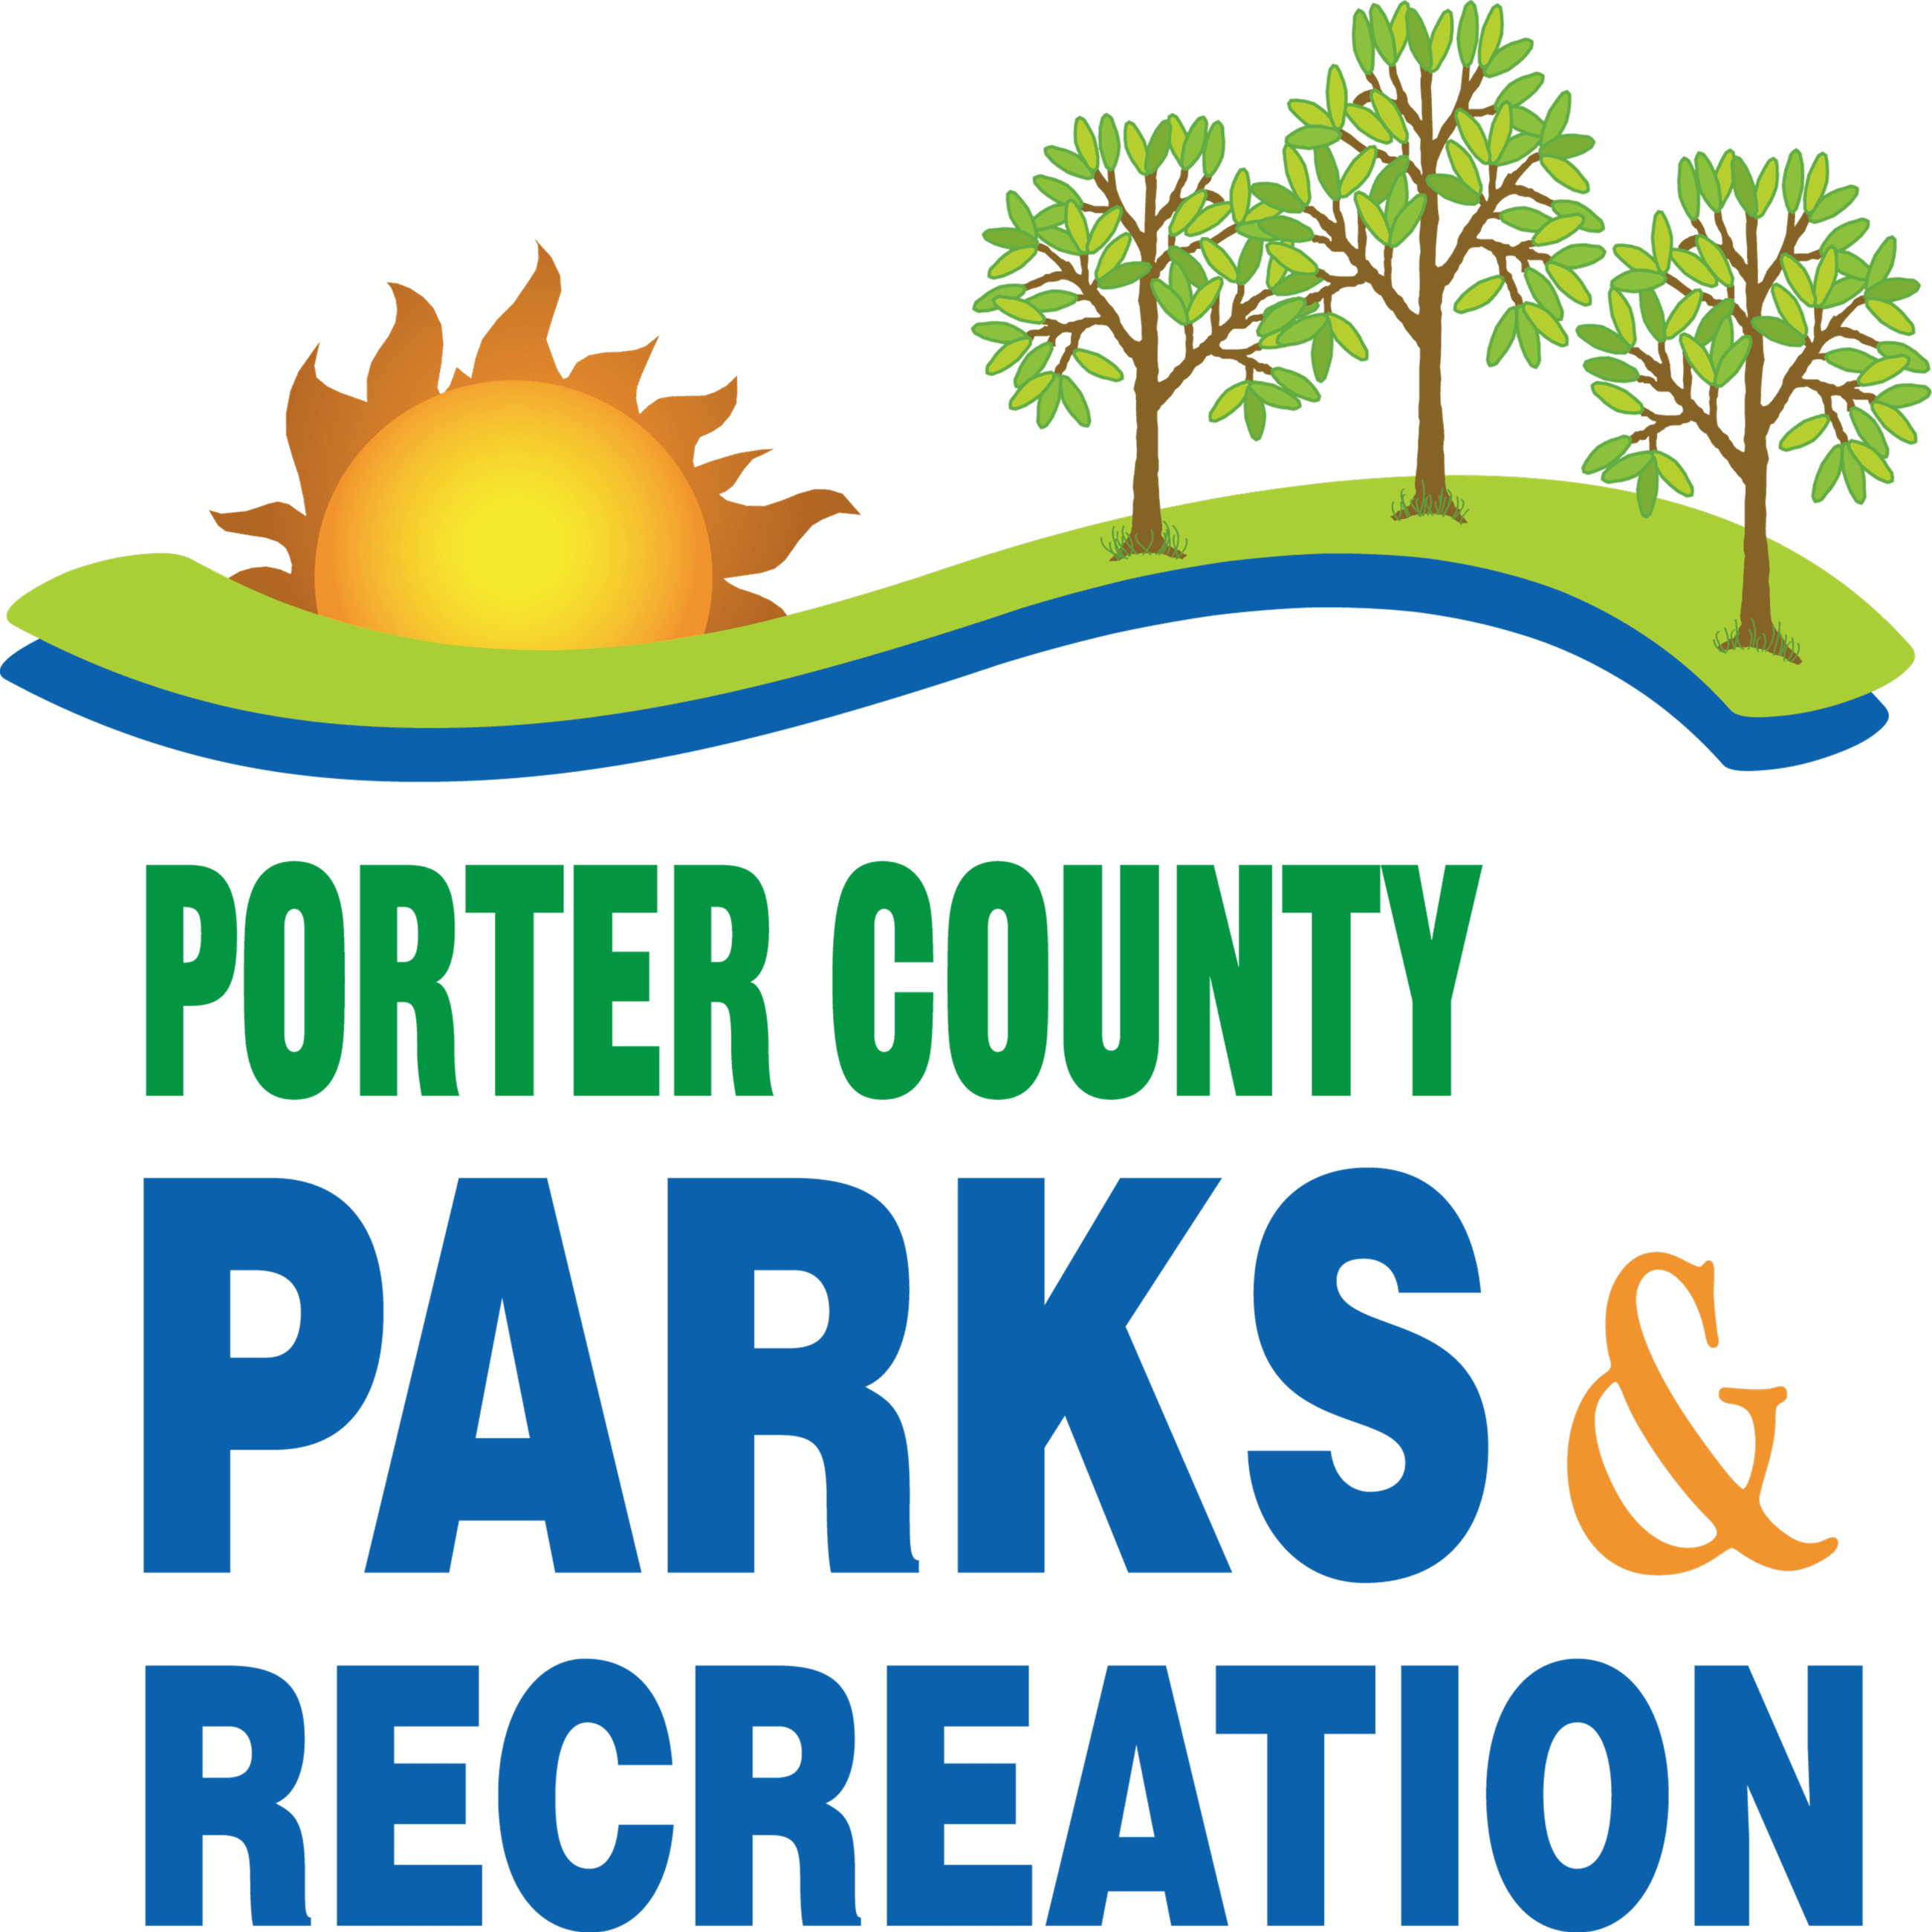 Find information about the offerings of Porter County Parks & Recreation